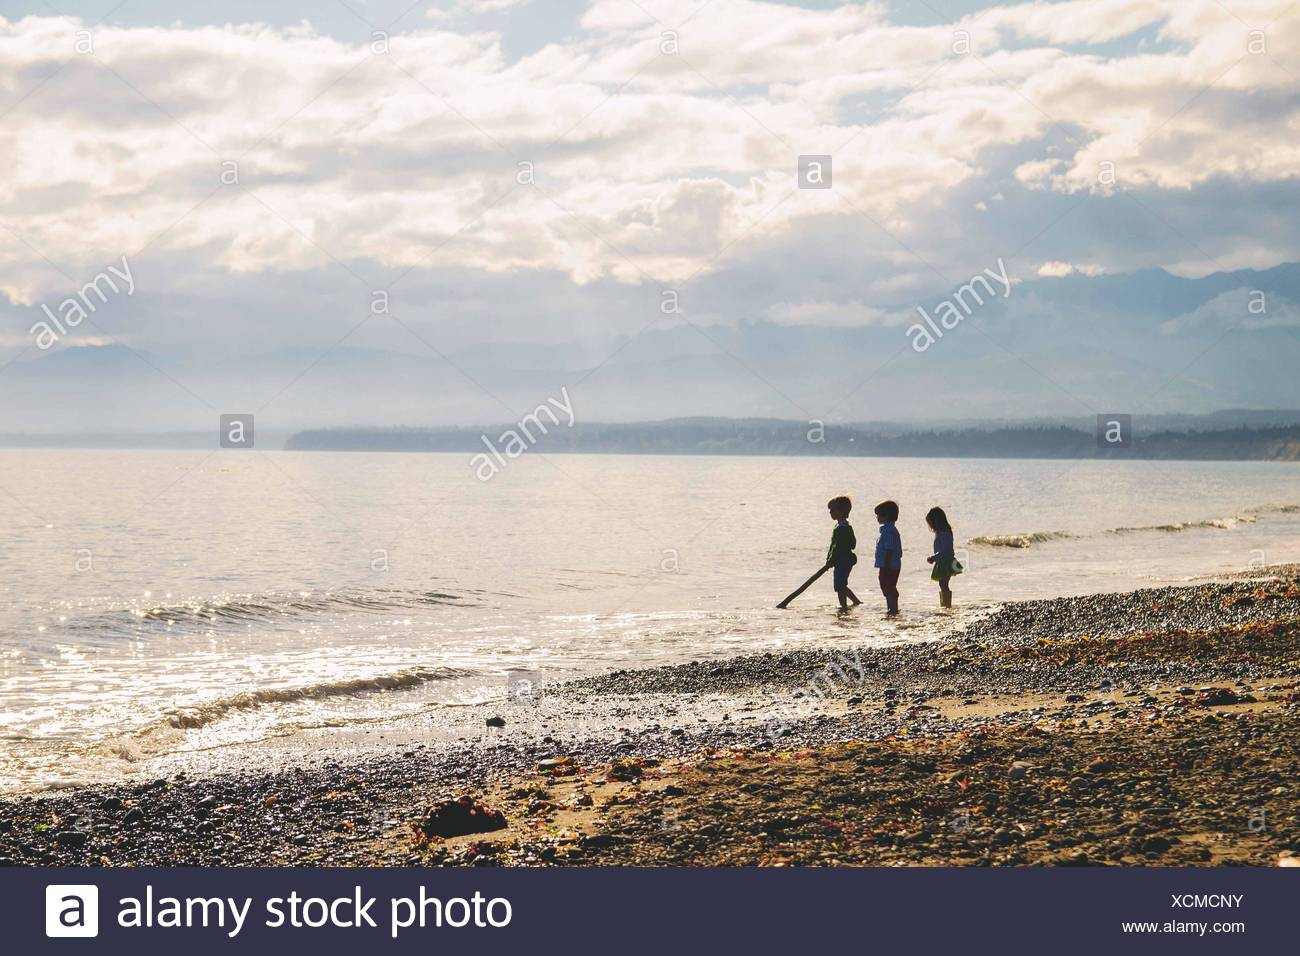 Three young children (2-3, 4-5) standing in silhouette on beach - Stock Image